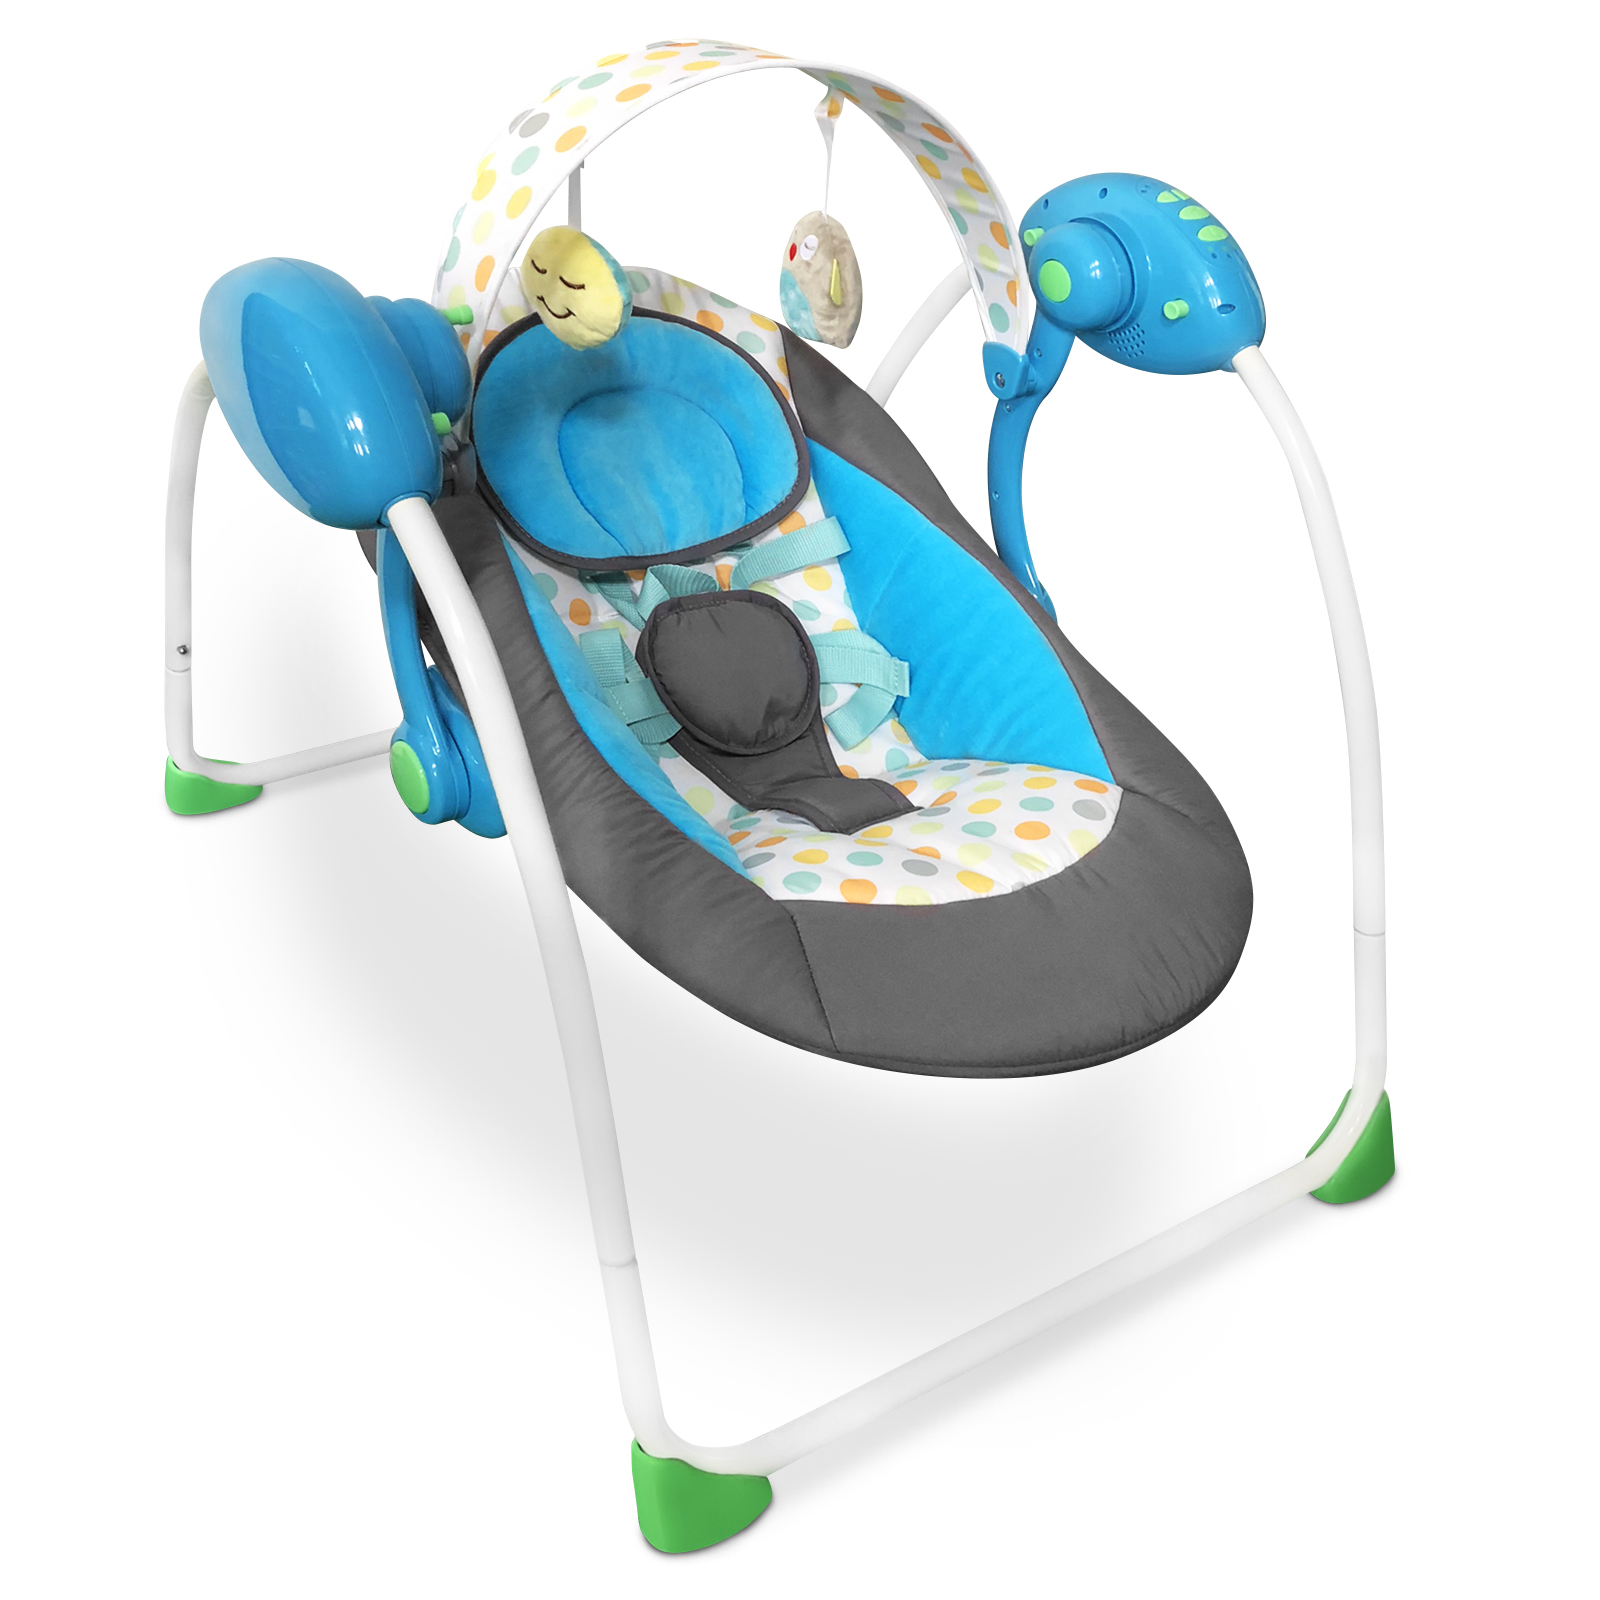 Baby-Bouncer-Music-MP3-Swing-Rocking-Chair-Infant-Entertainment-Toys-U12-Months thumbnail 9